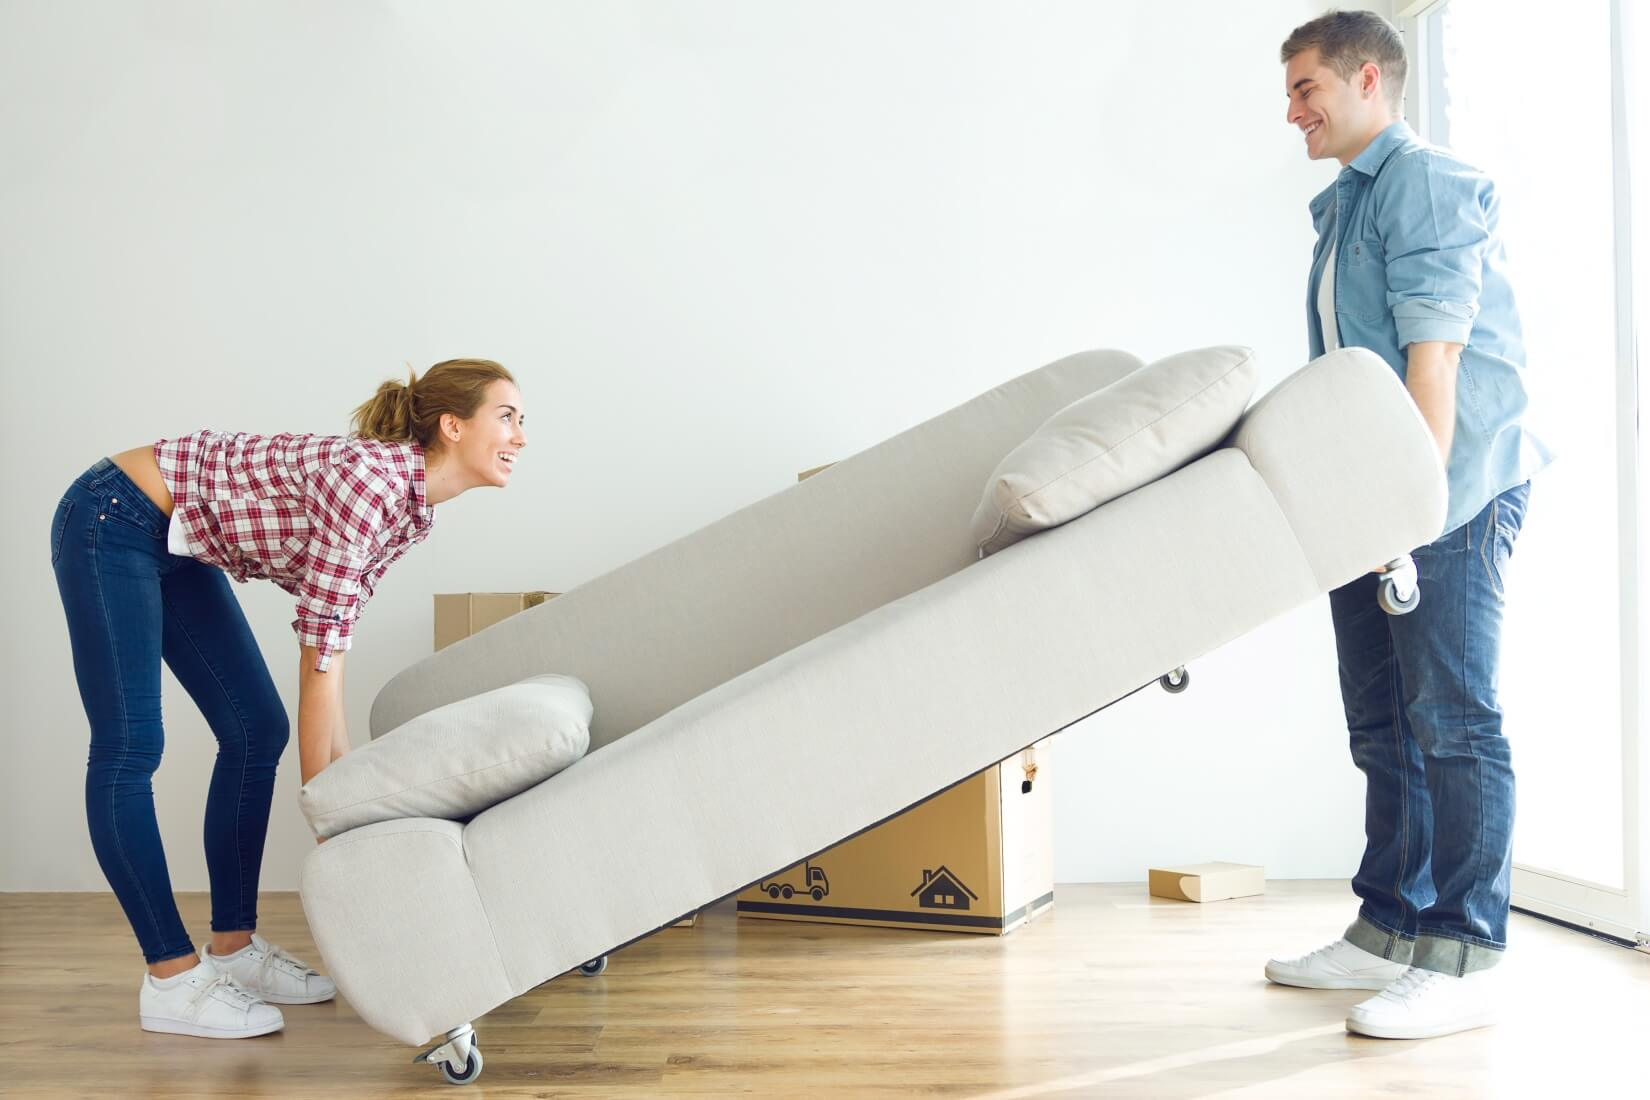 Embarking on a DIY project? Check your home insurance